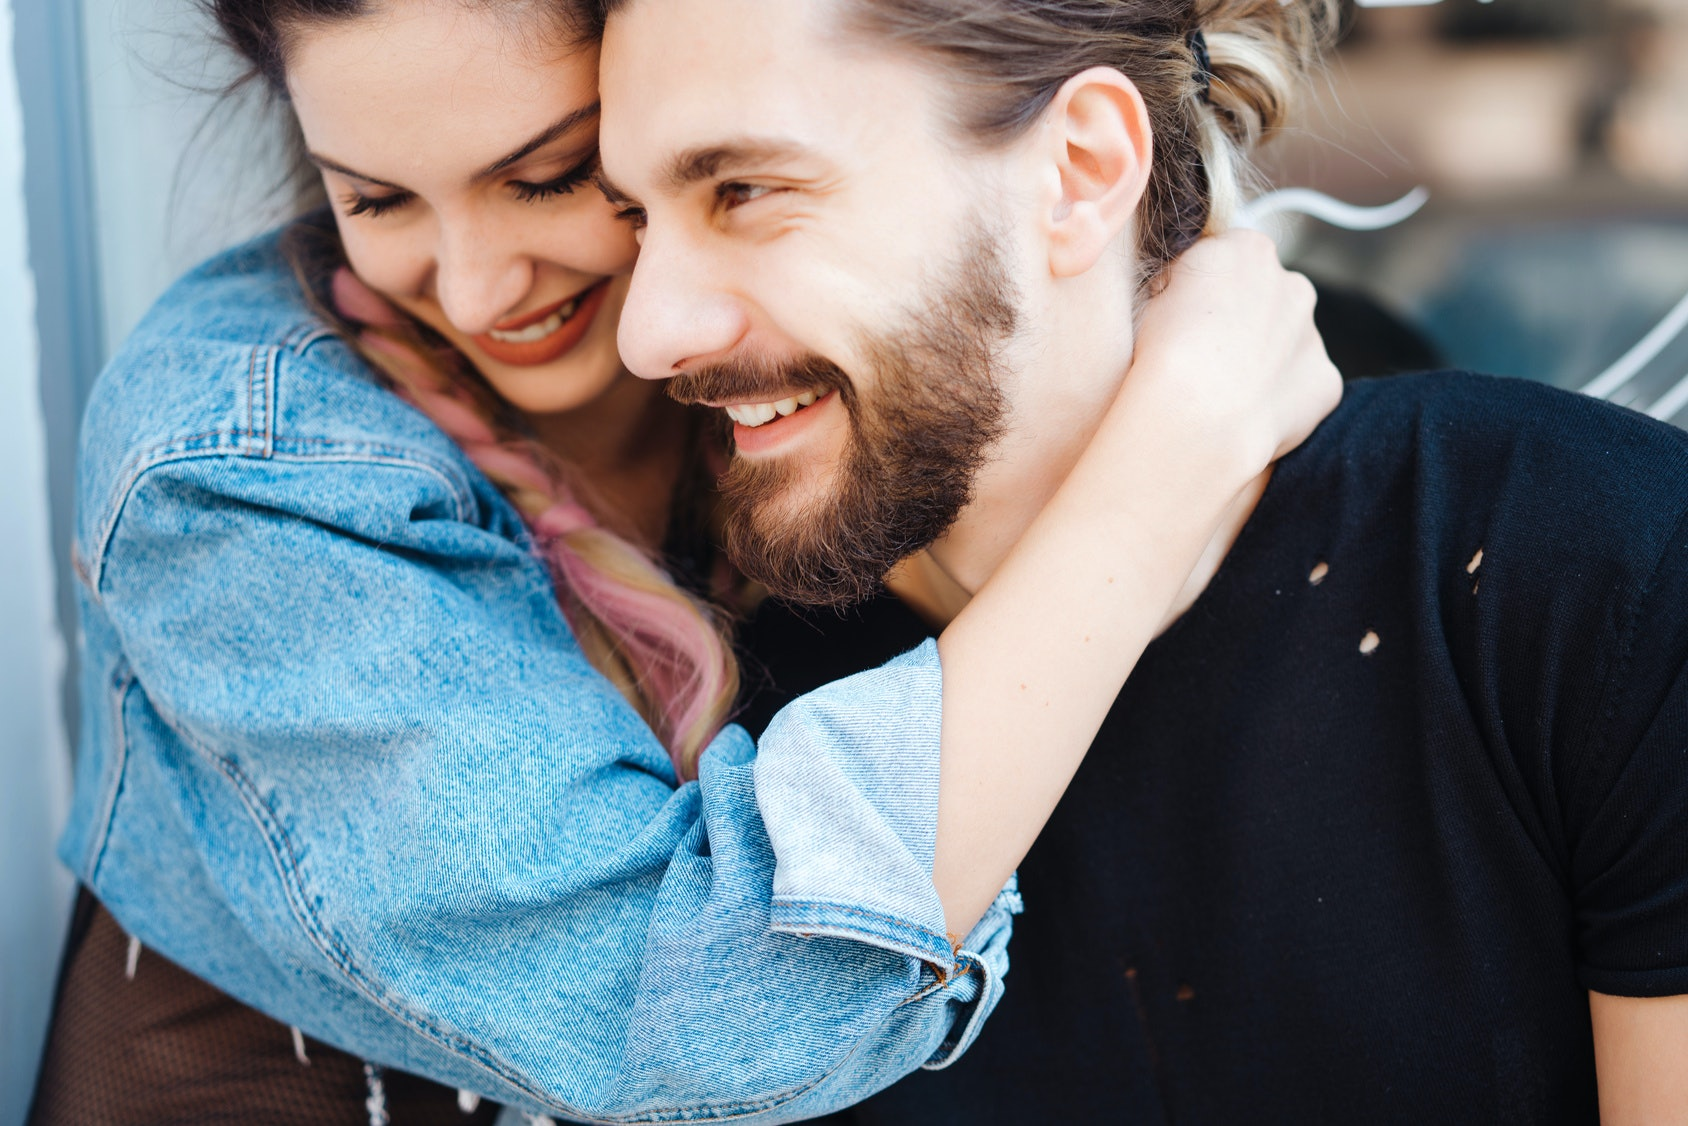 Hookup success out of your league